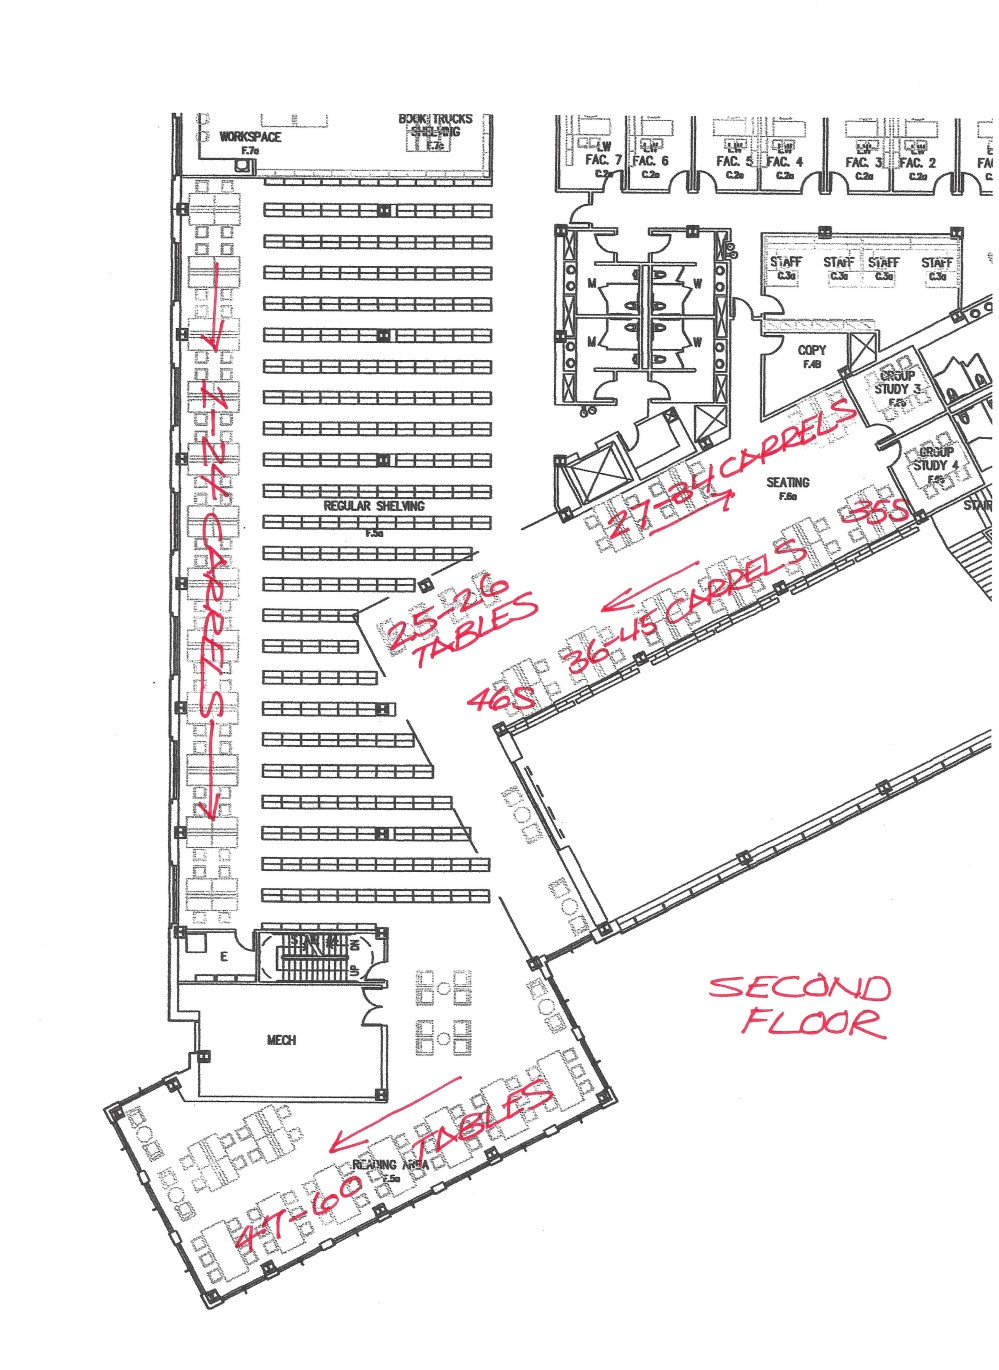 Map of Second Floor that Includes Reserved Seating Sections with Seat Numbers